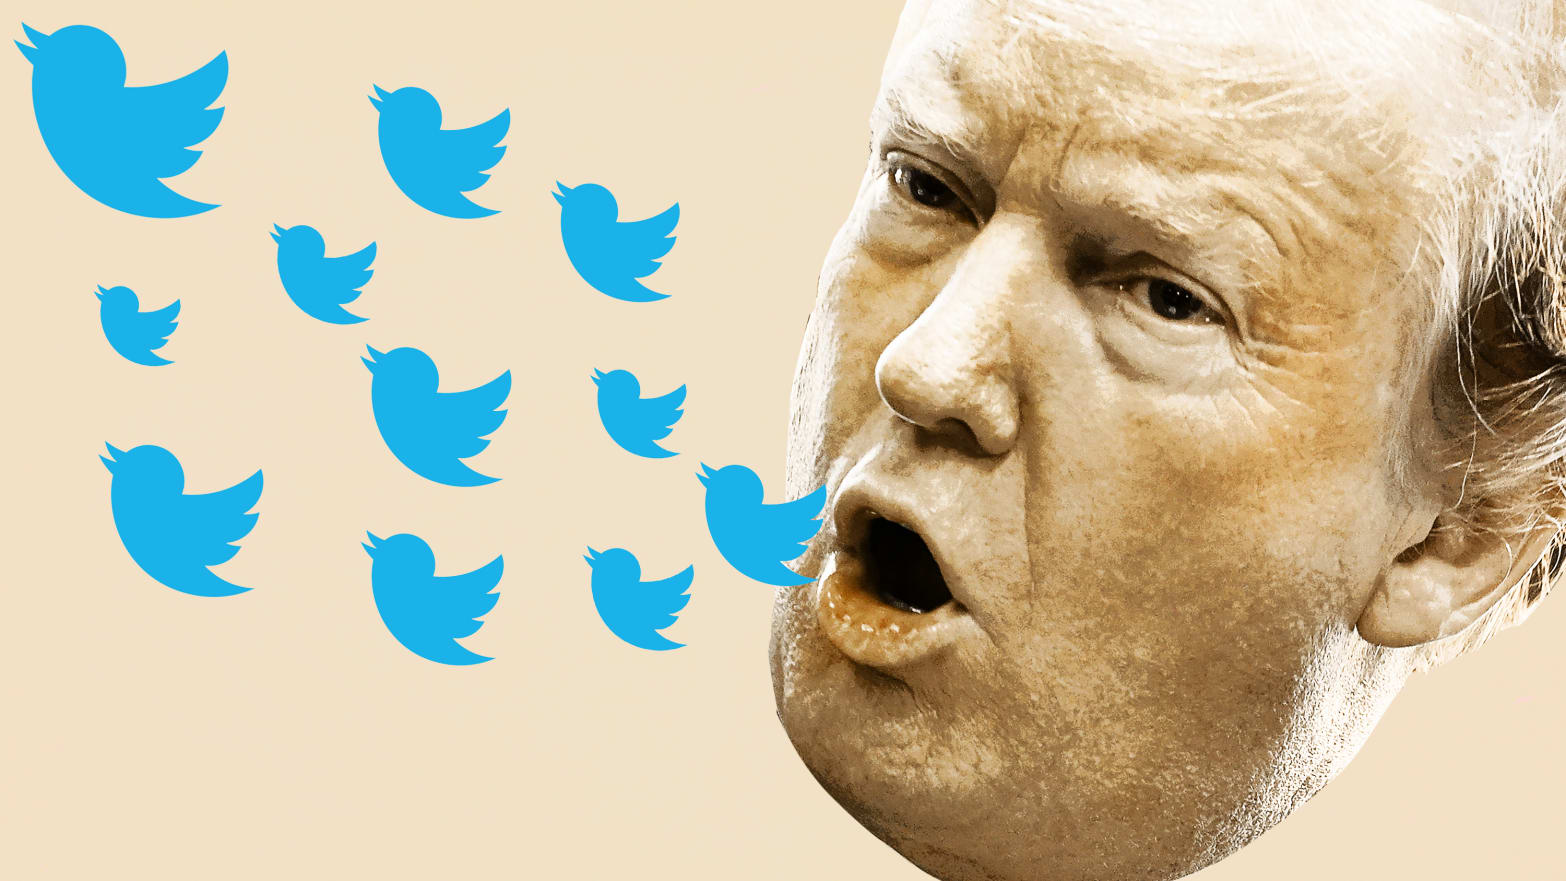 Twitter CEO Gently Tells Trump: Your 'Lost' Followers Are Bots and